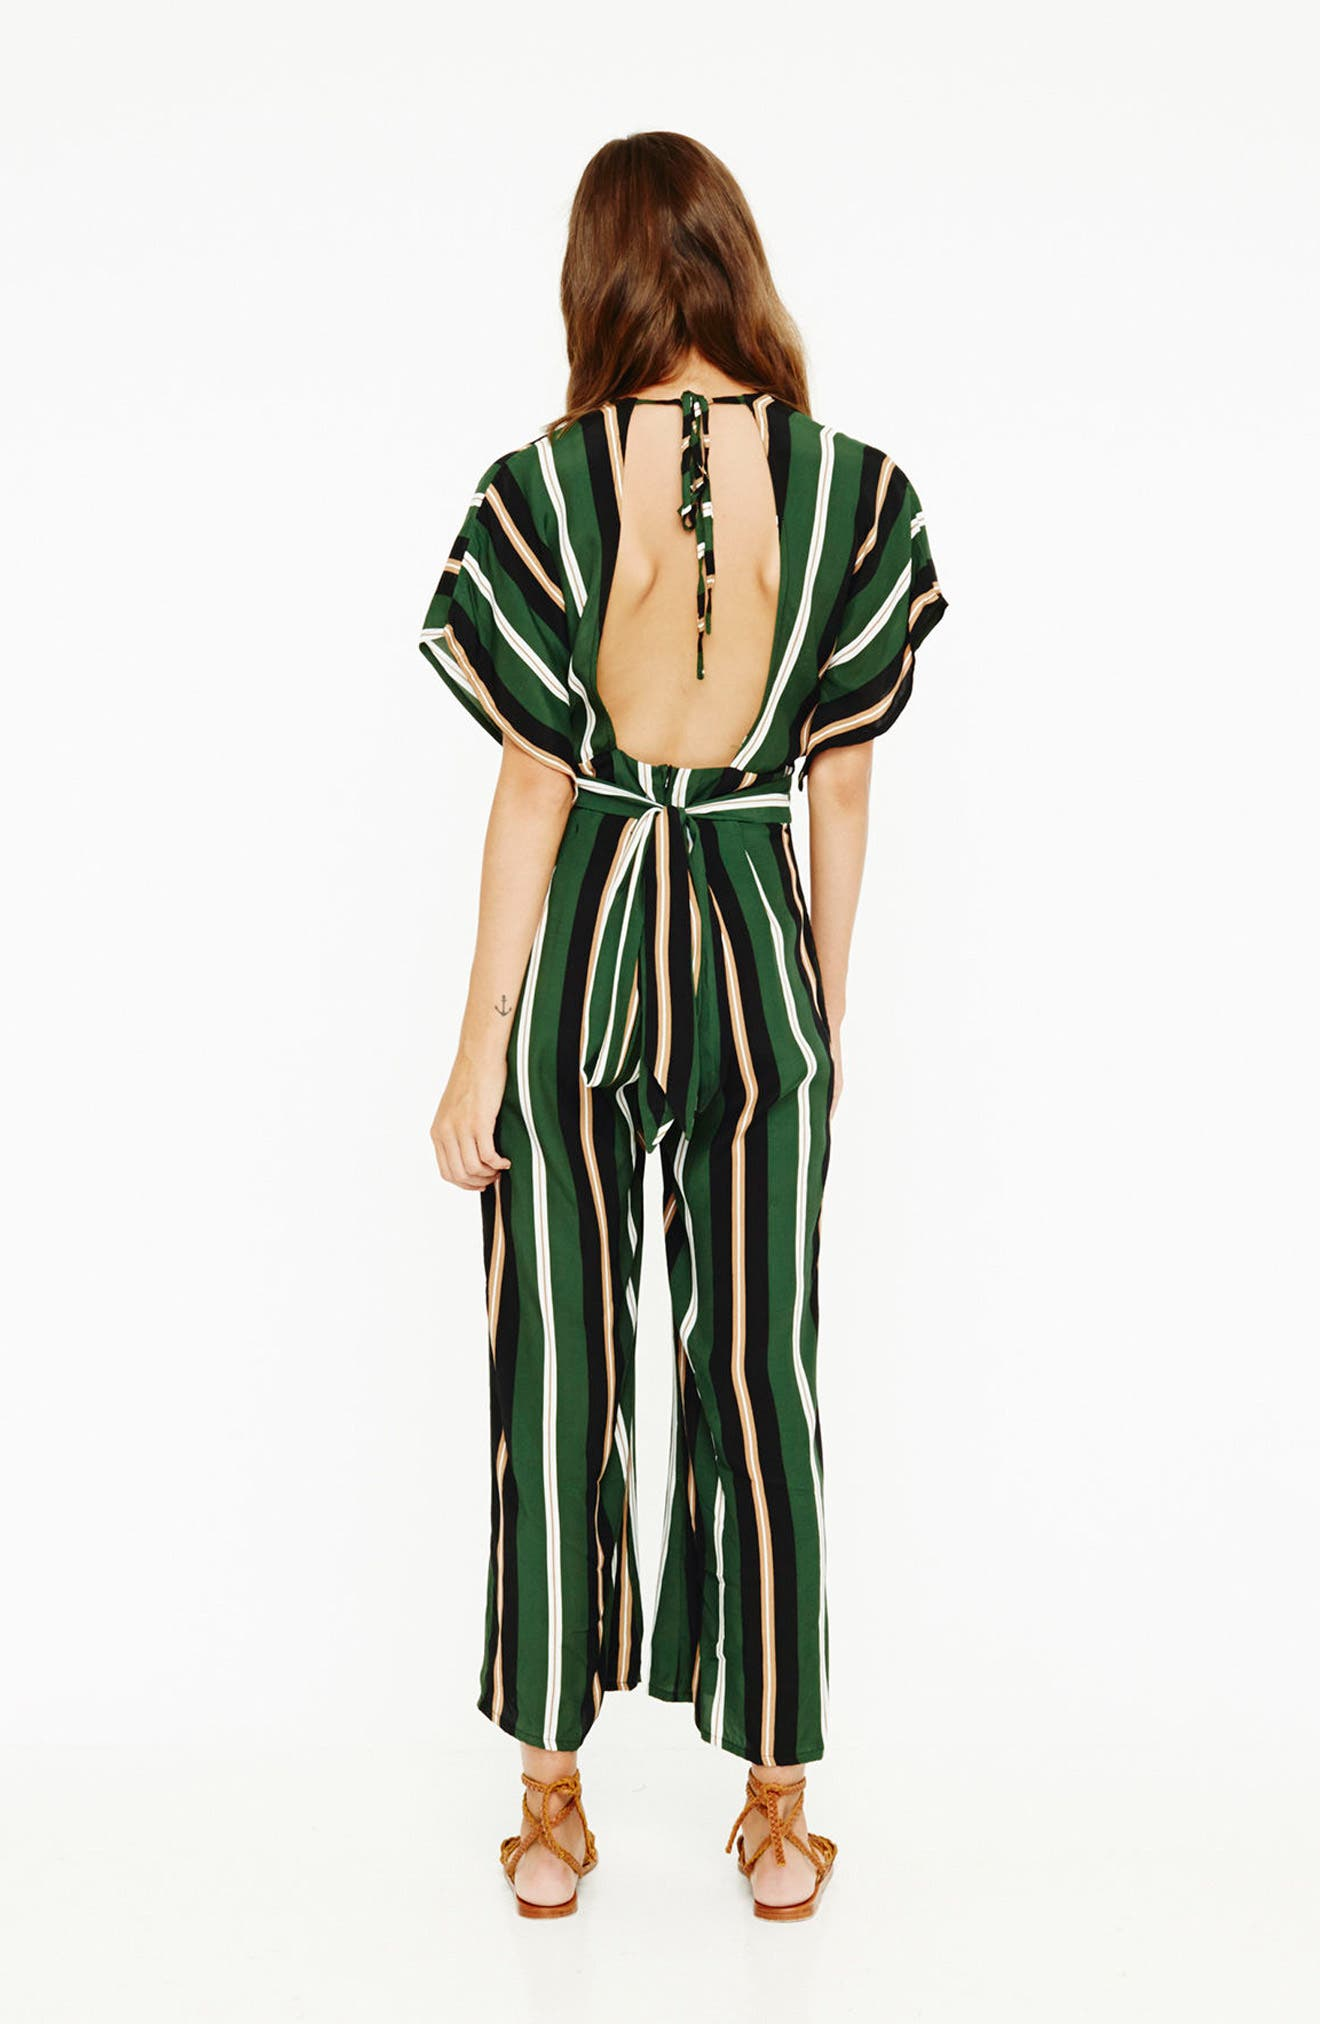 Cedric Jumpsuit,                             Alternate thumbnail 7, color,                             Firenze Stripes Green/Blk